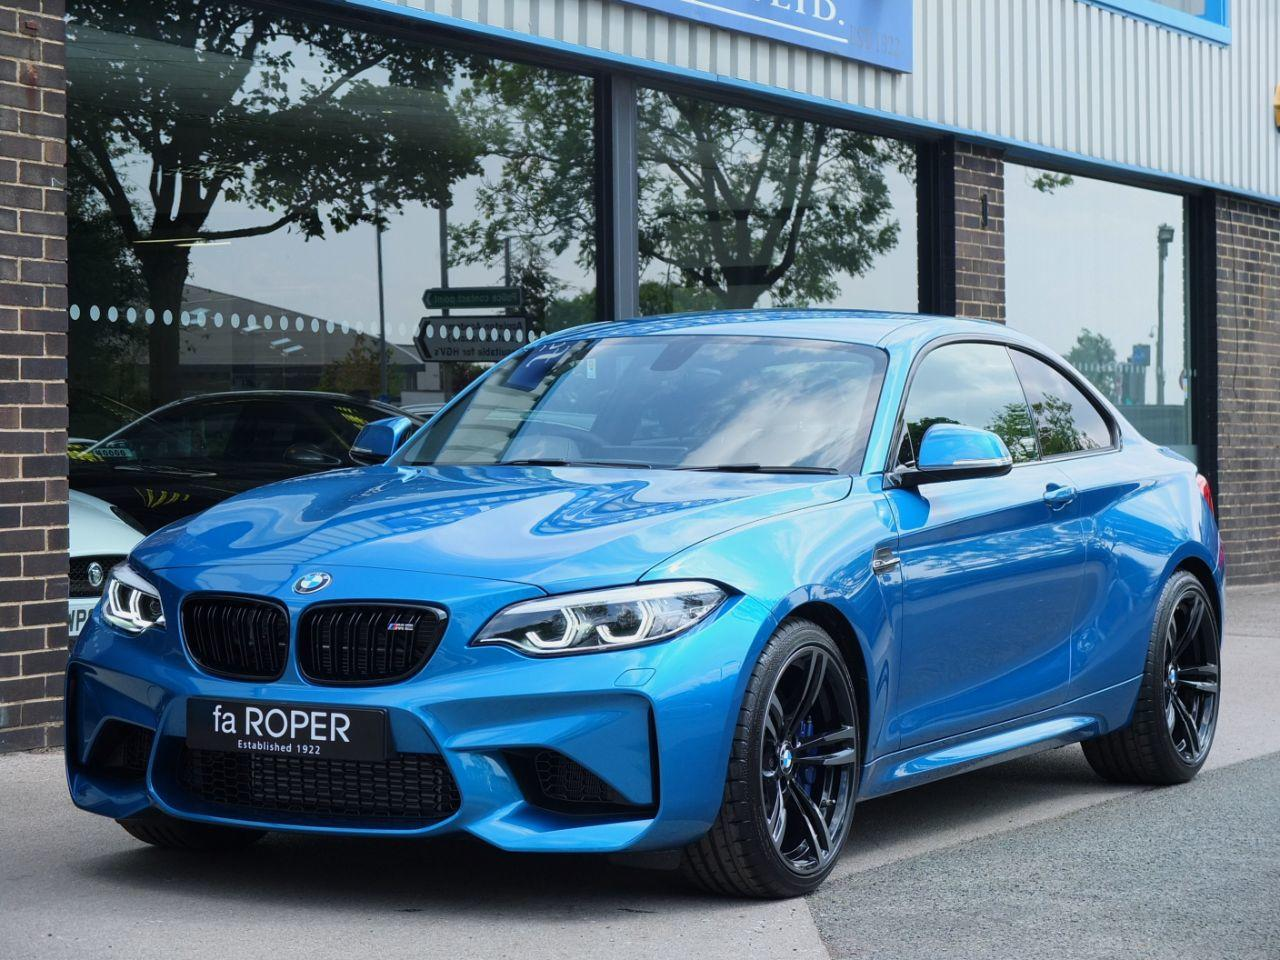 BMW M2 3.0 DCT Coupe Petrol Long Beach Blue MetallicBMW M2 3.0 DCT Coupe Petrol Long Beach Blue Metallic at fa Roper Ltd Bradford